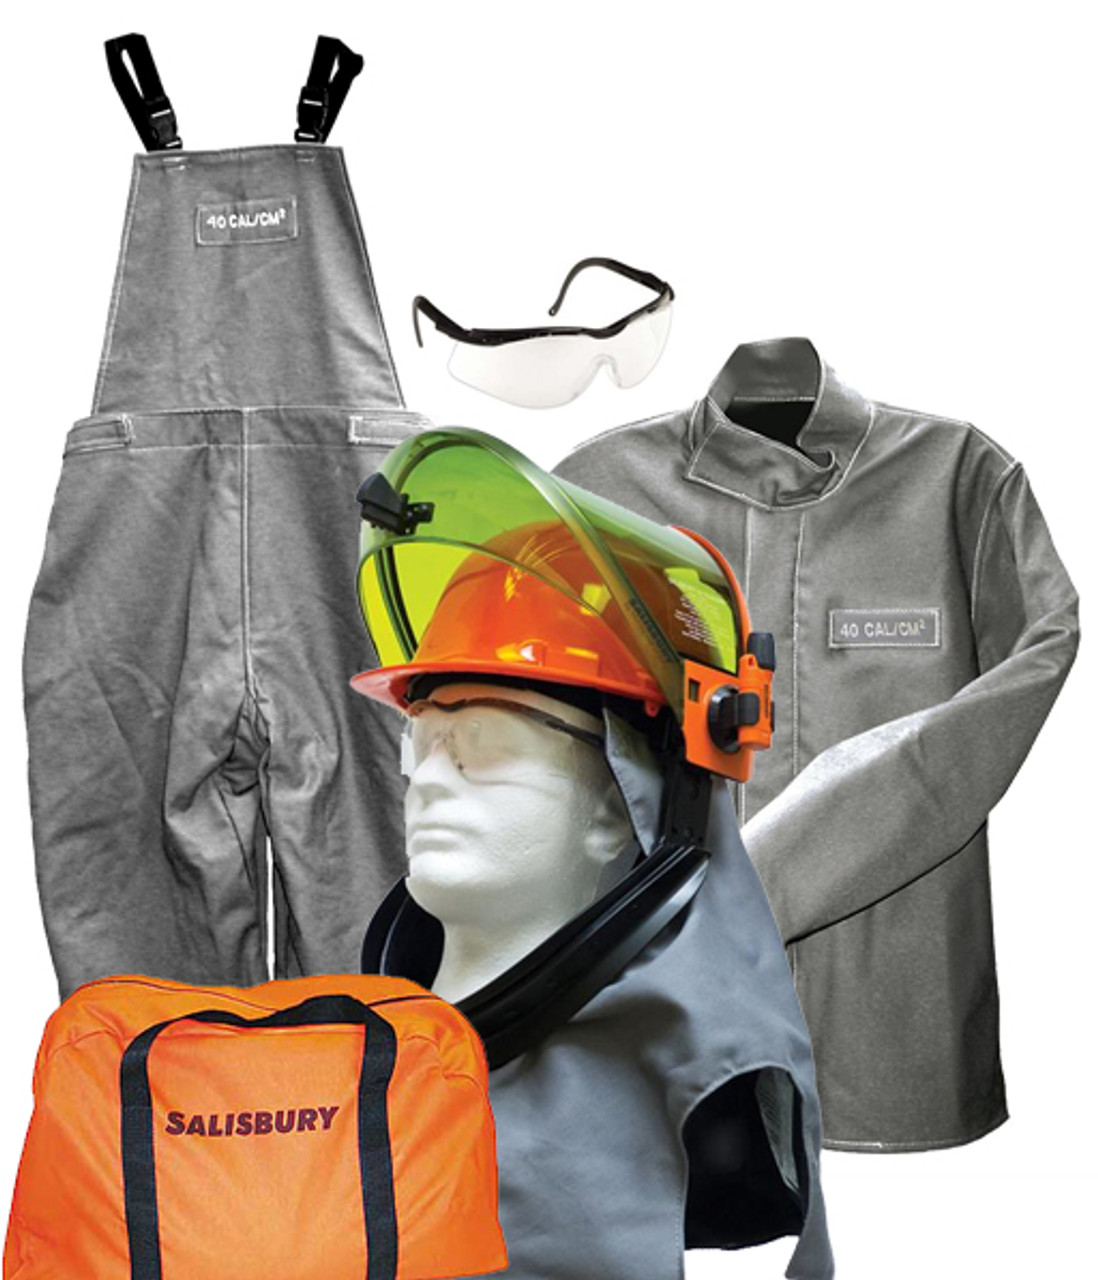 c9a61437d613 Salisbury 40 Cal Arc Flash Protection With Jacket